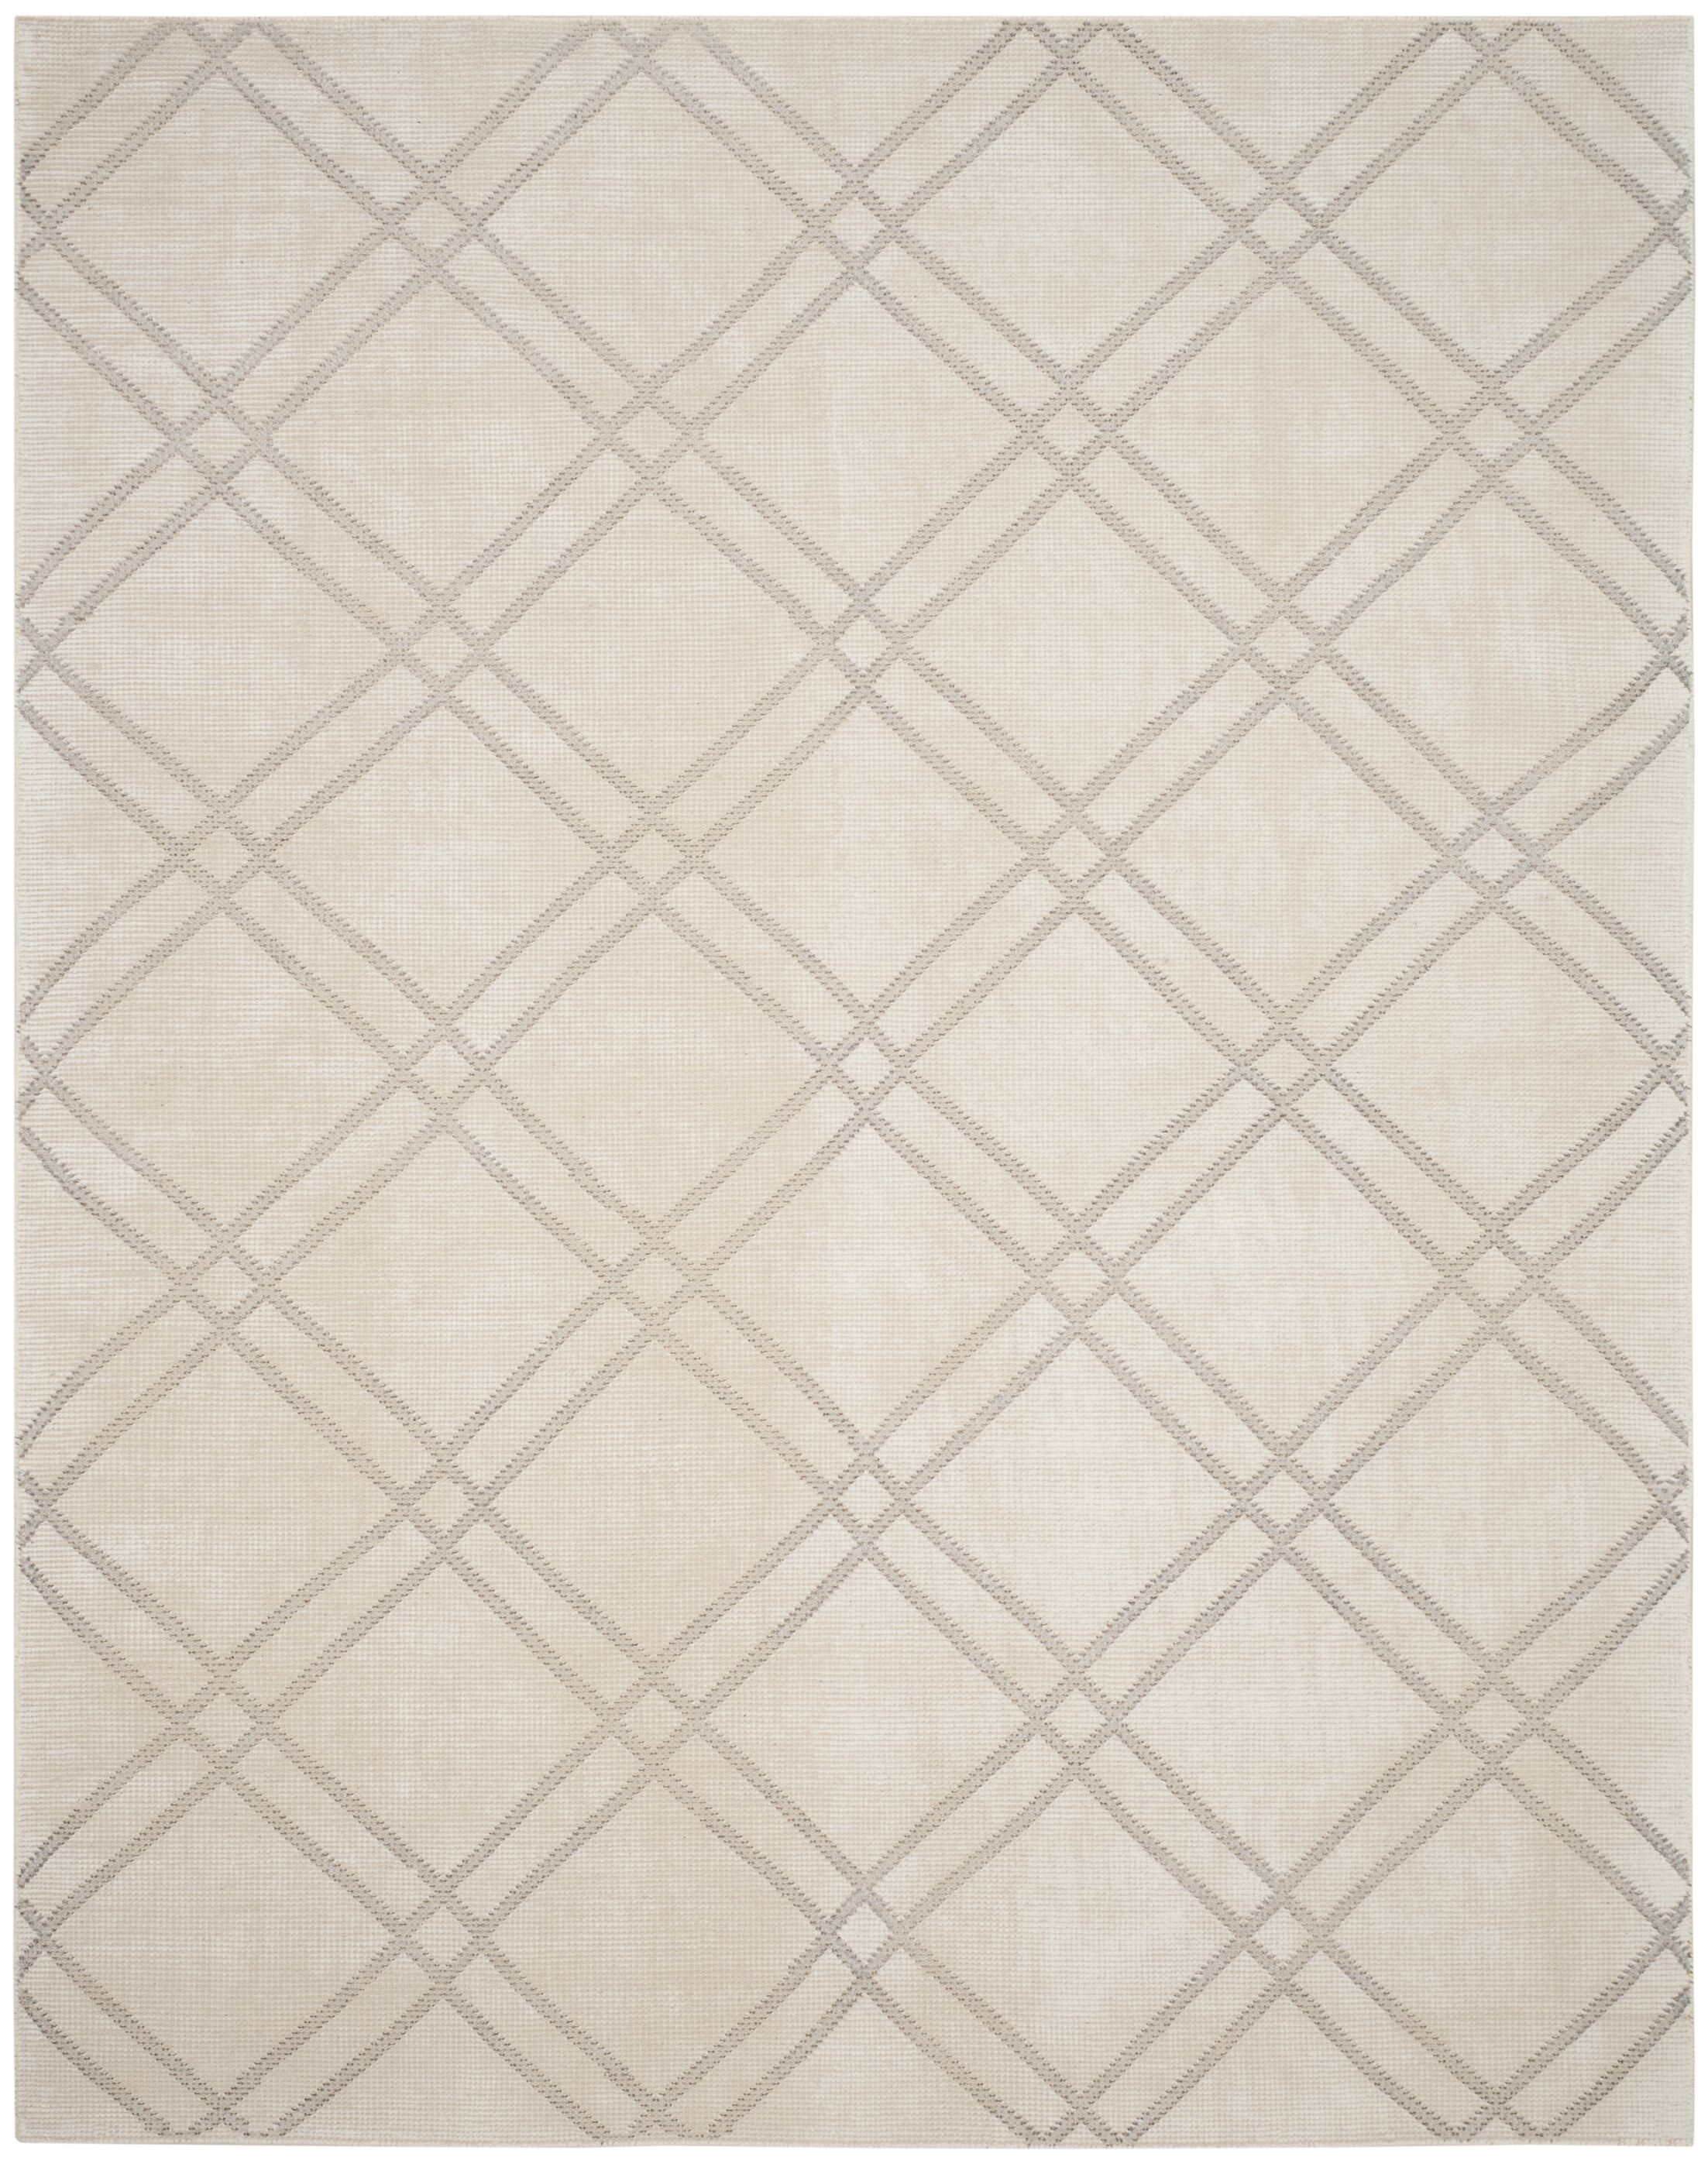 Bradenton Hand-Knotted Dove/Ivory Area Rug Rug Size: Rectangle 4' x 6'